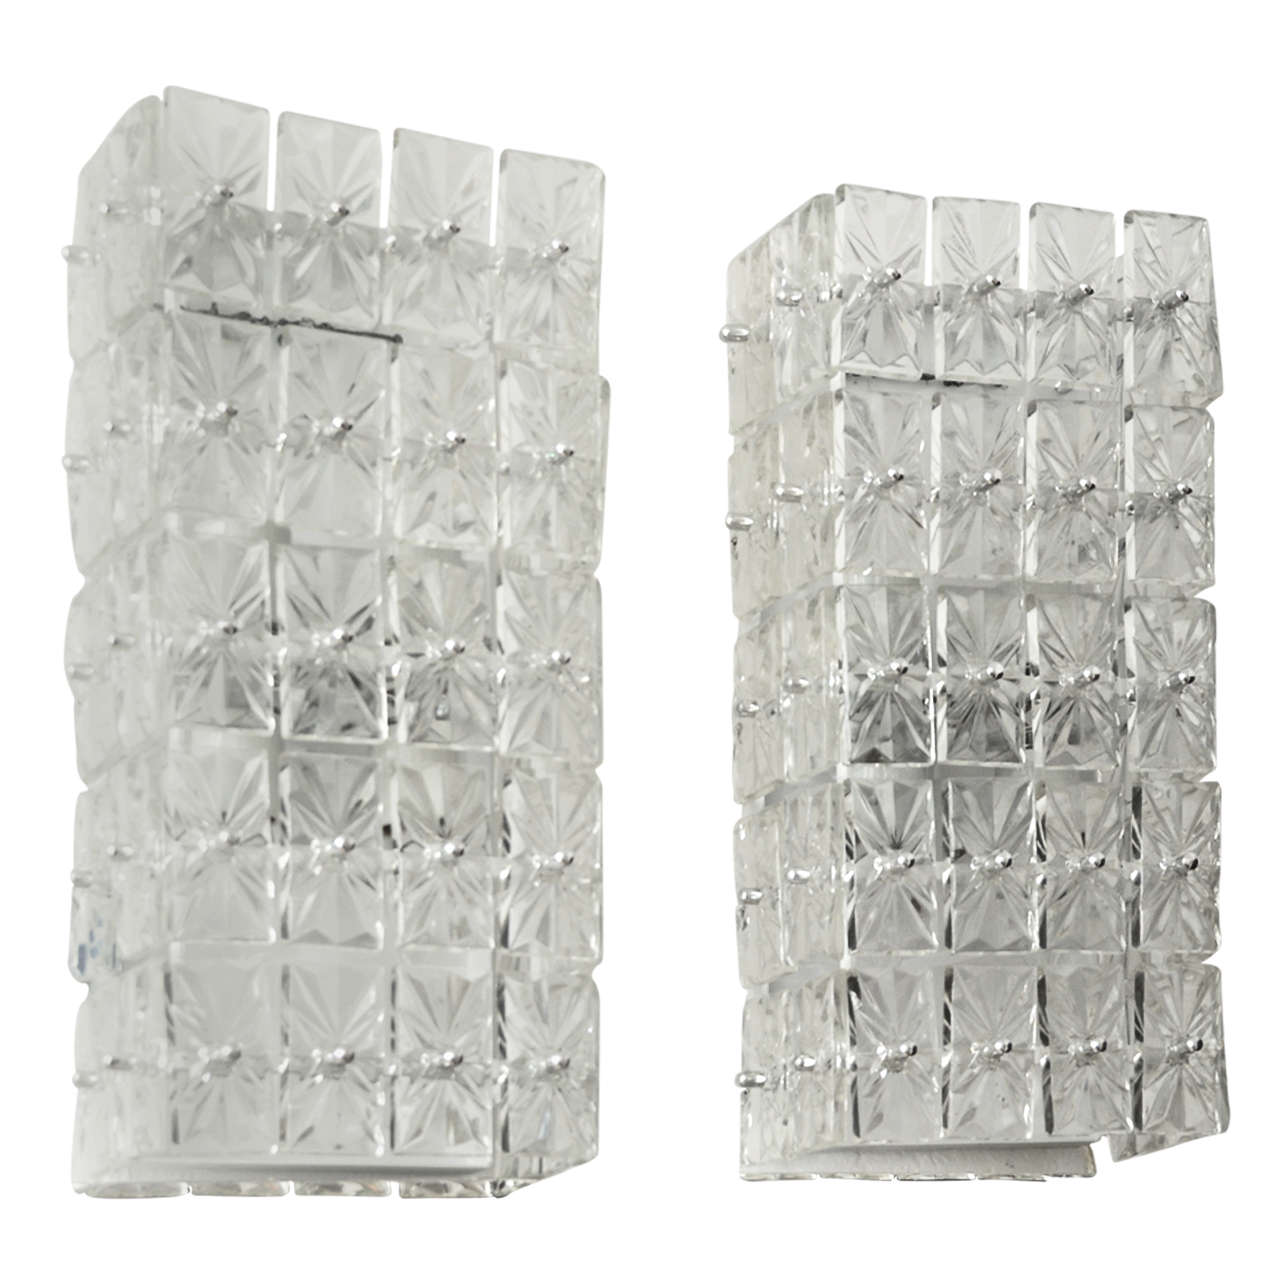 Pair of Decorative Glass Tile Sconces at 1stdibs